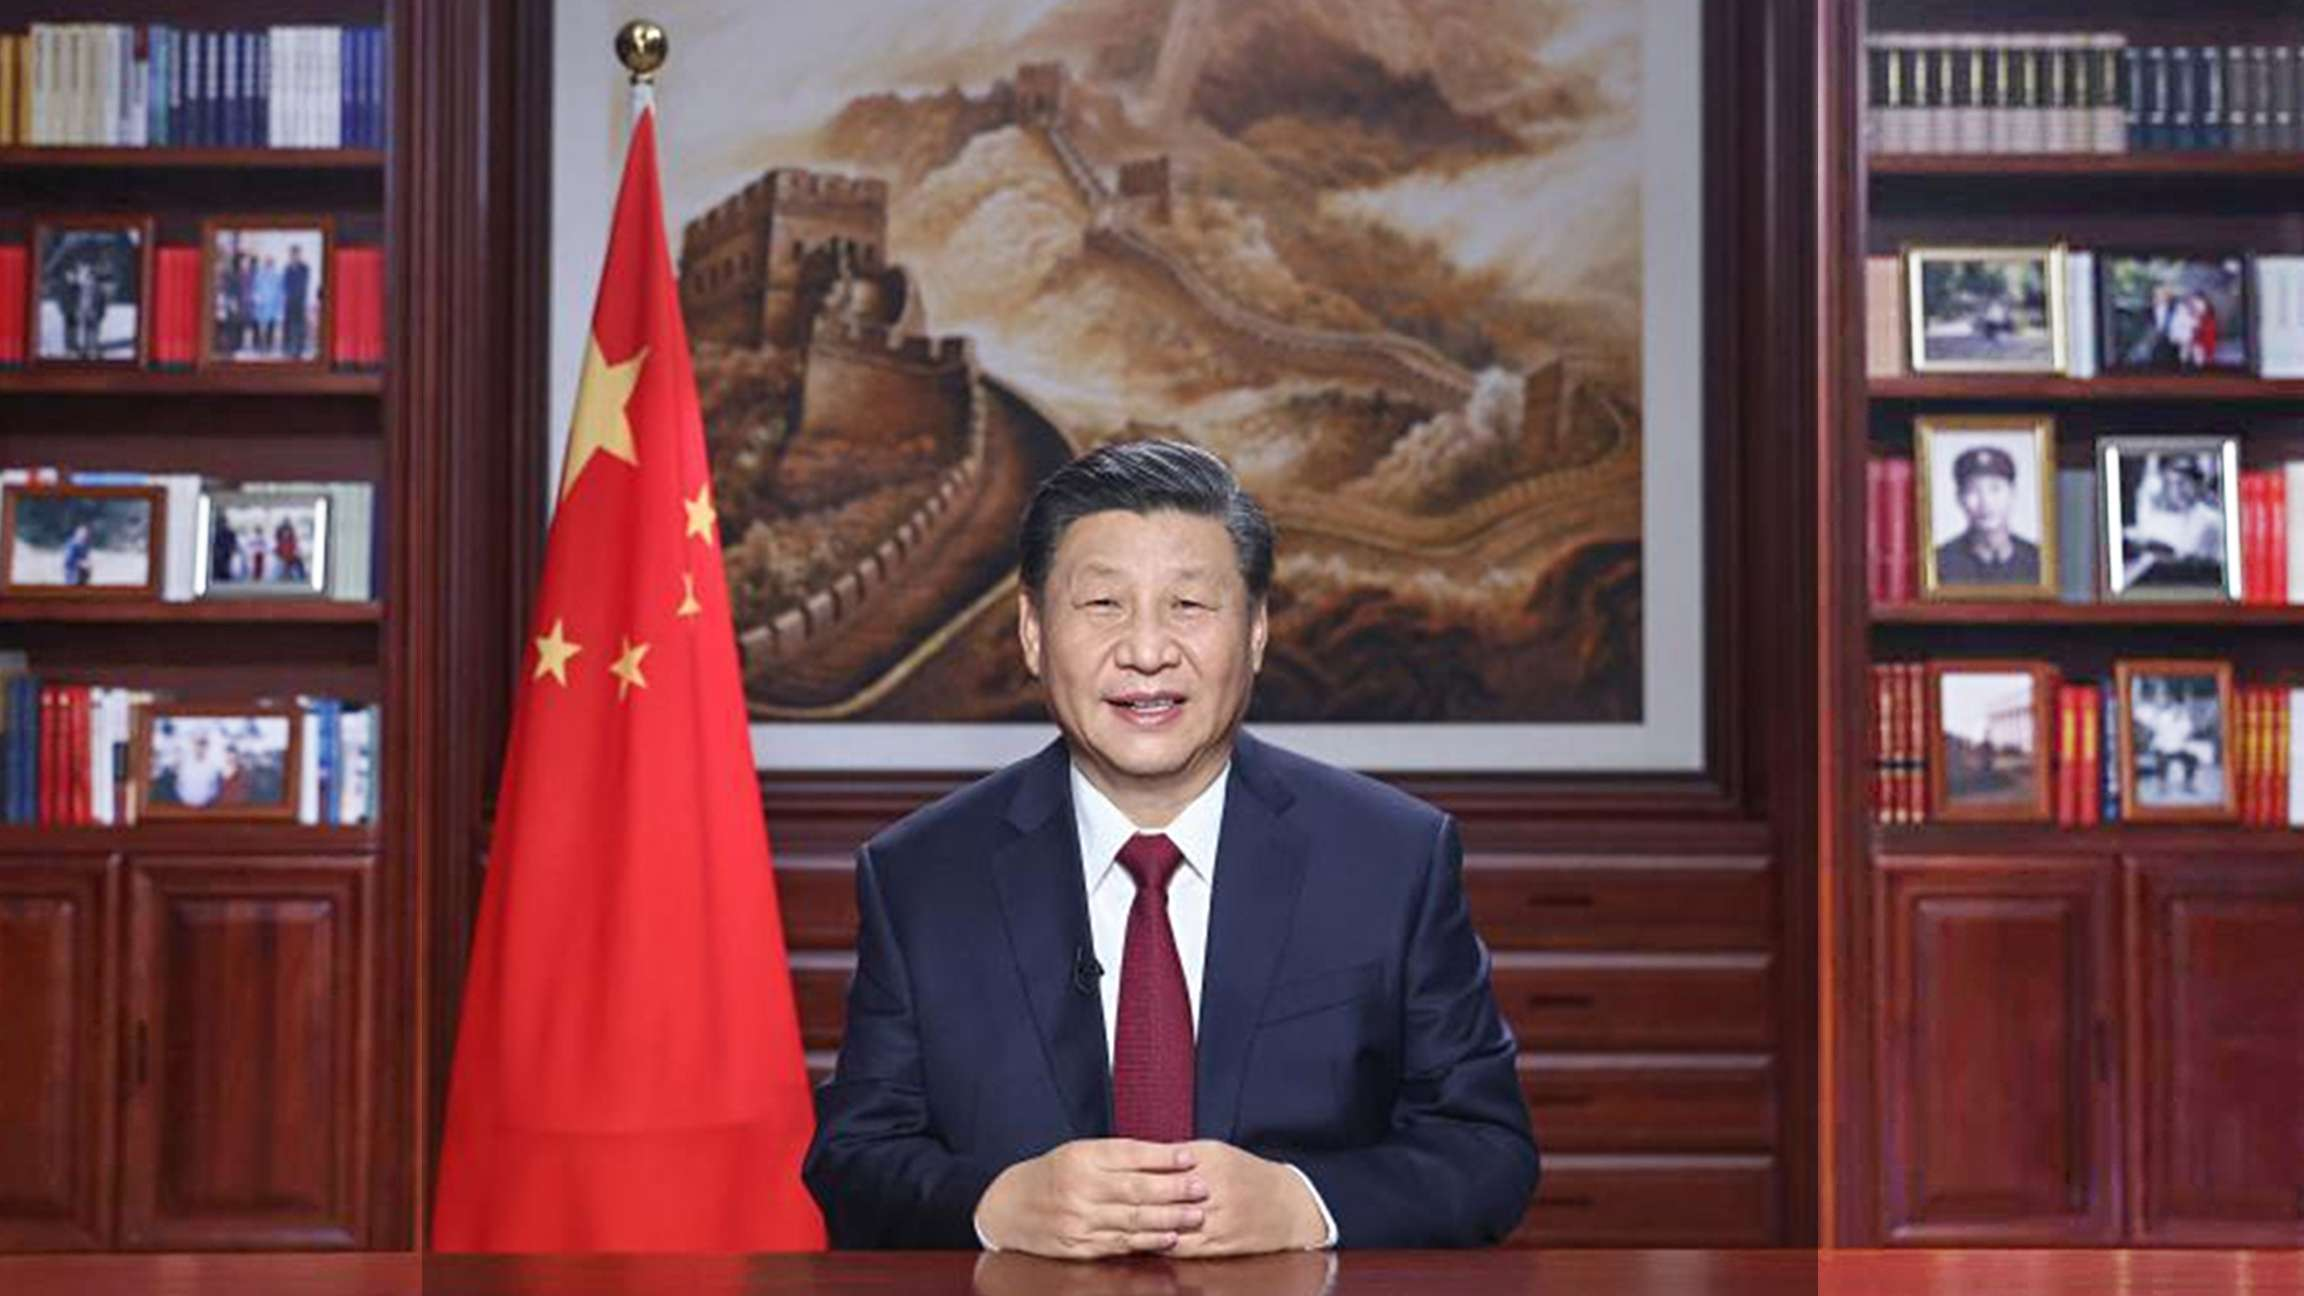 Chinese President Xi Jinping delivers a New Year speech Thursday evening in Beijing to ring in 2021